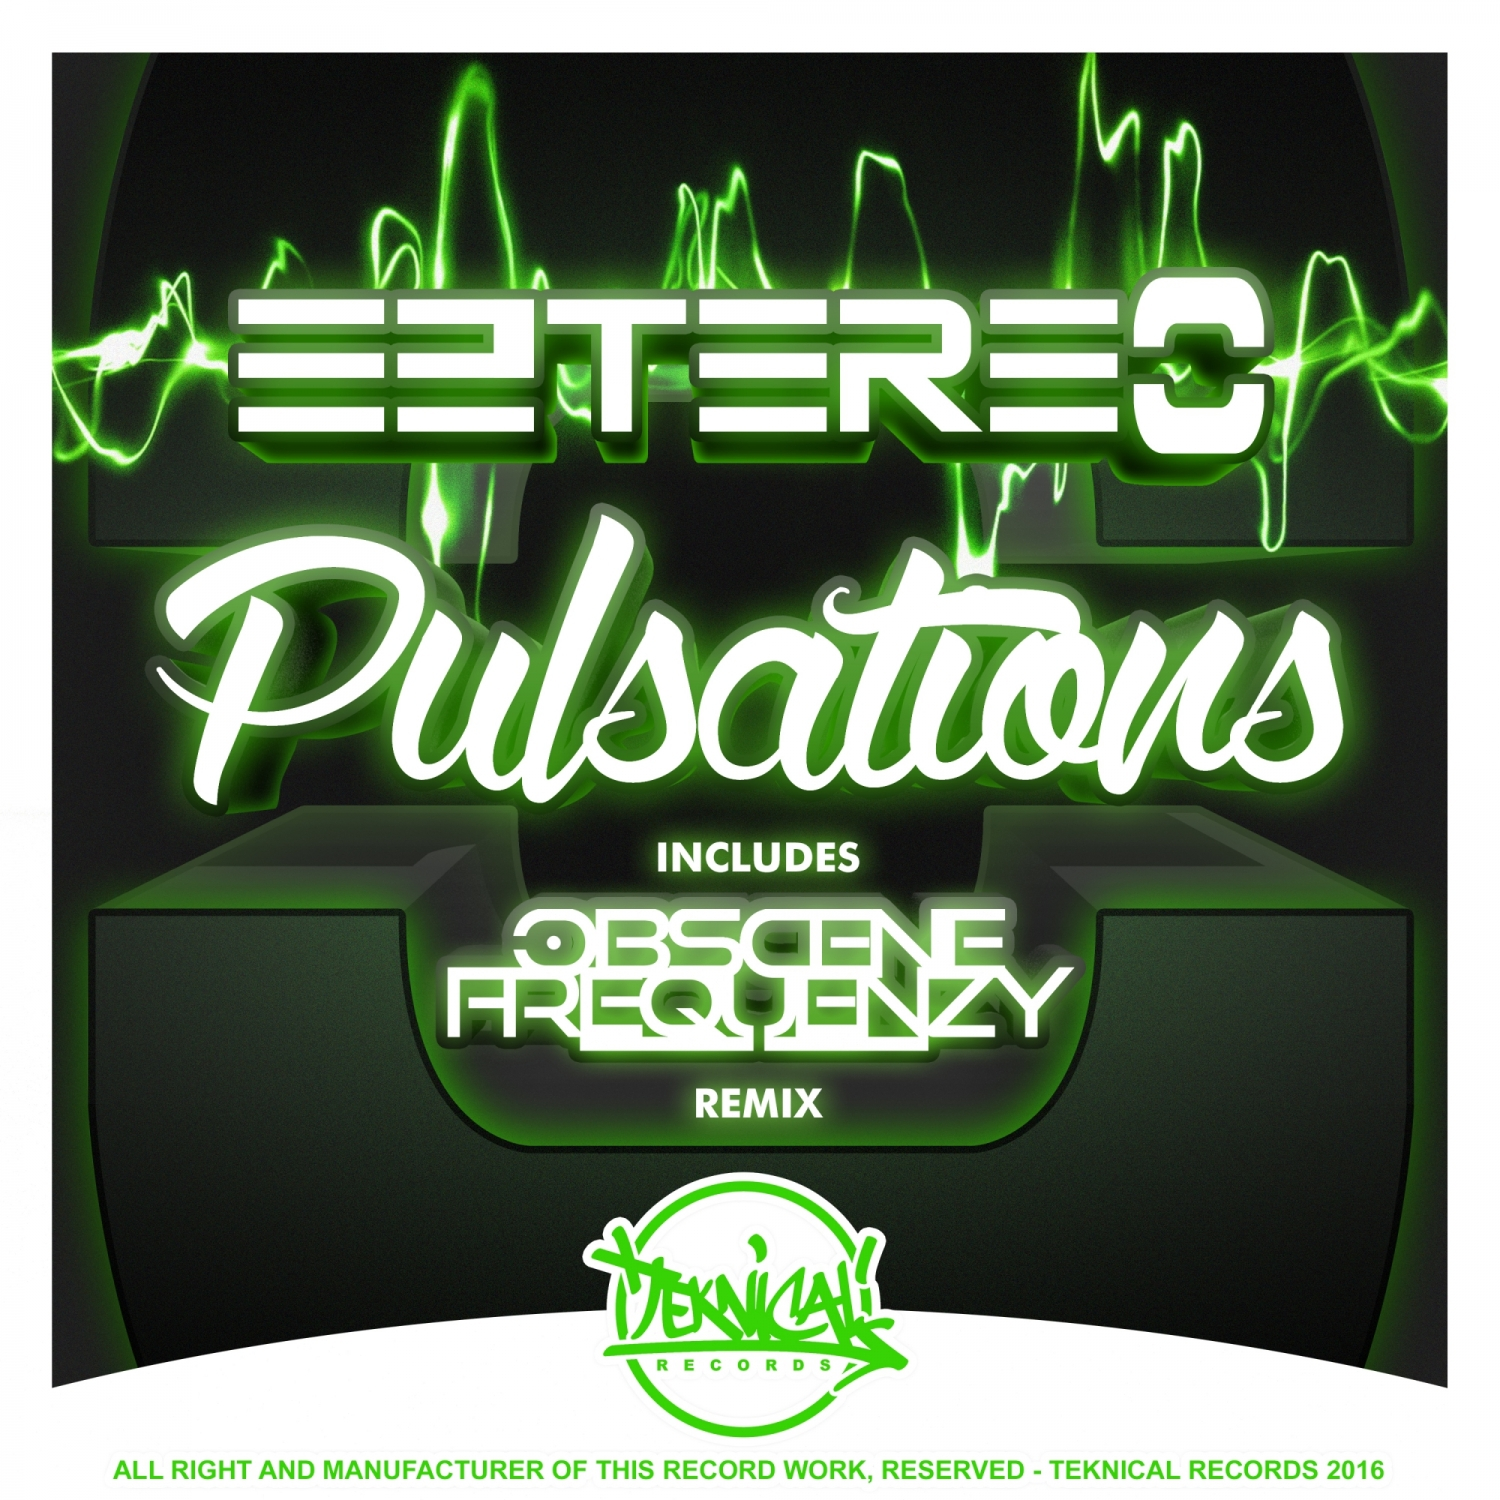 Eztereo - Pulsations  (Original Mix)